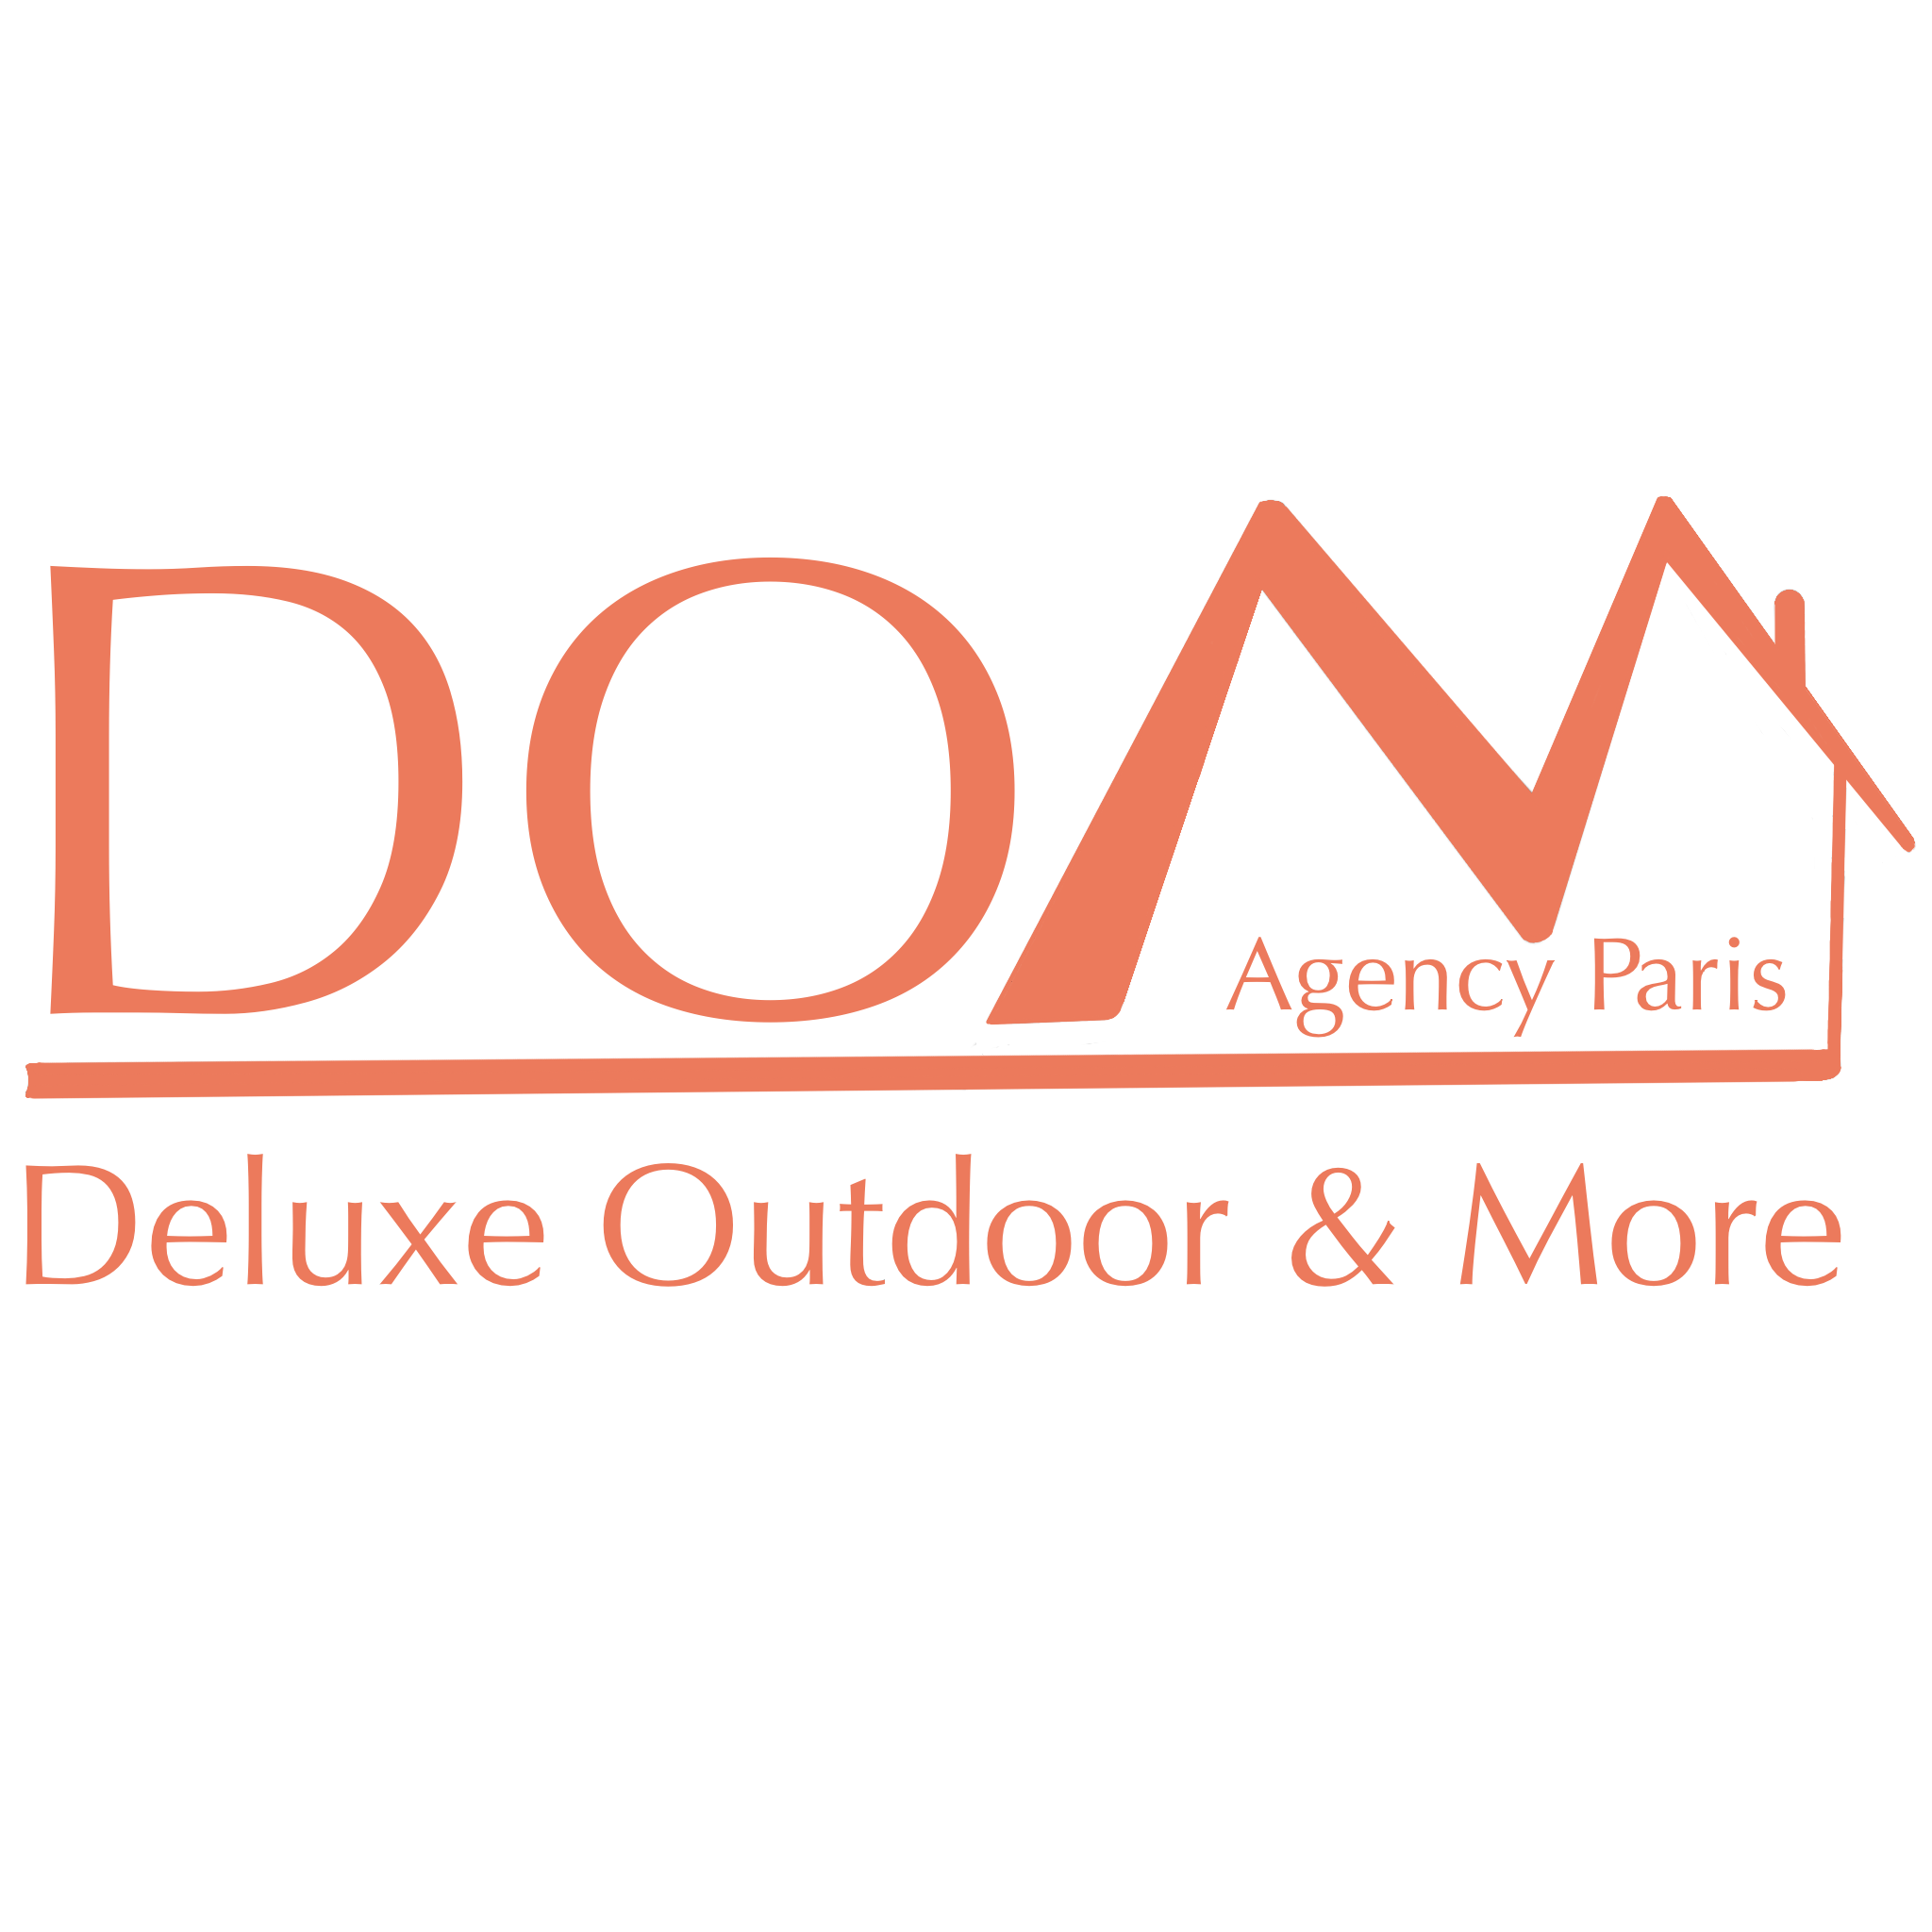 DOM AGENCY PARIS